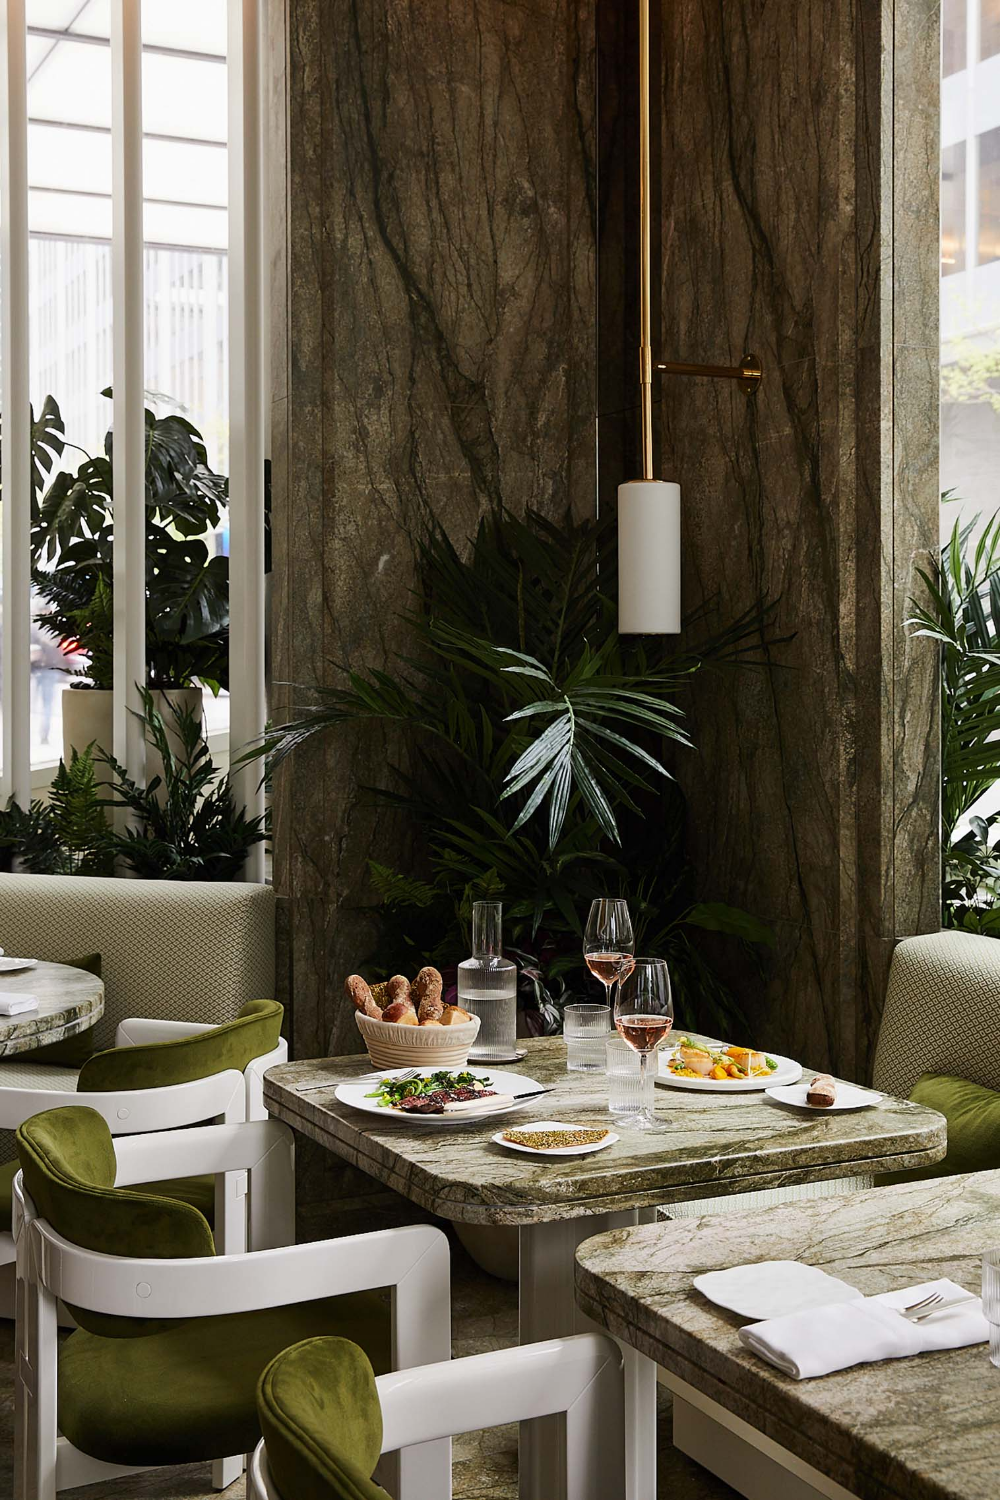 A Garden Focused Restaurant Opens in the Heart of